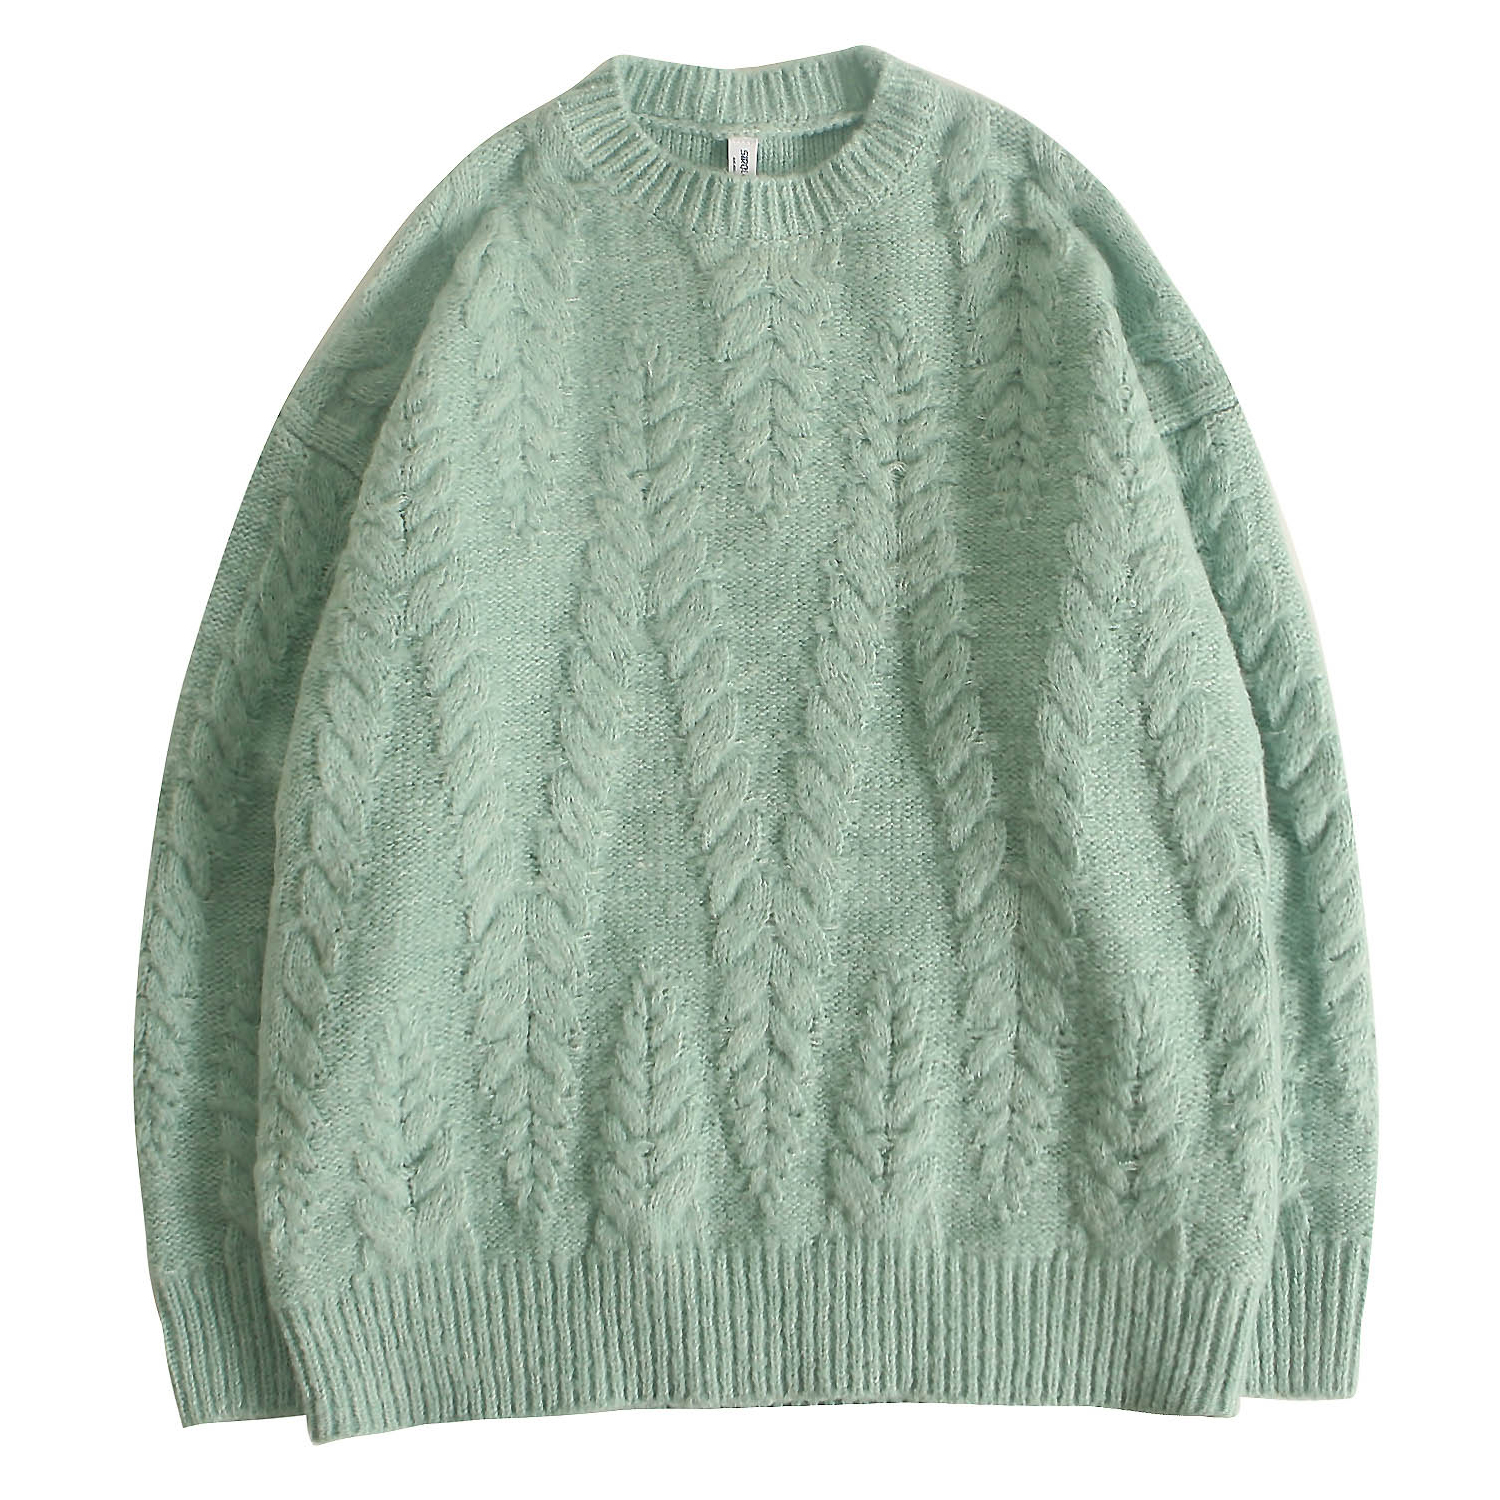 Men's Sweater Chunky Knitted Jumpers Cashmere Pullover Long Sleeve Tops Retro For Young Boys Outdoor Solid Color Autumn Winter